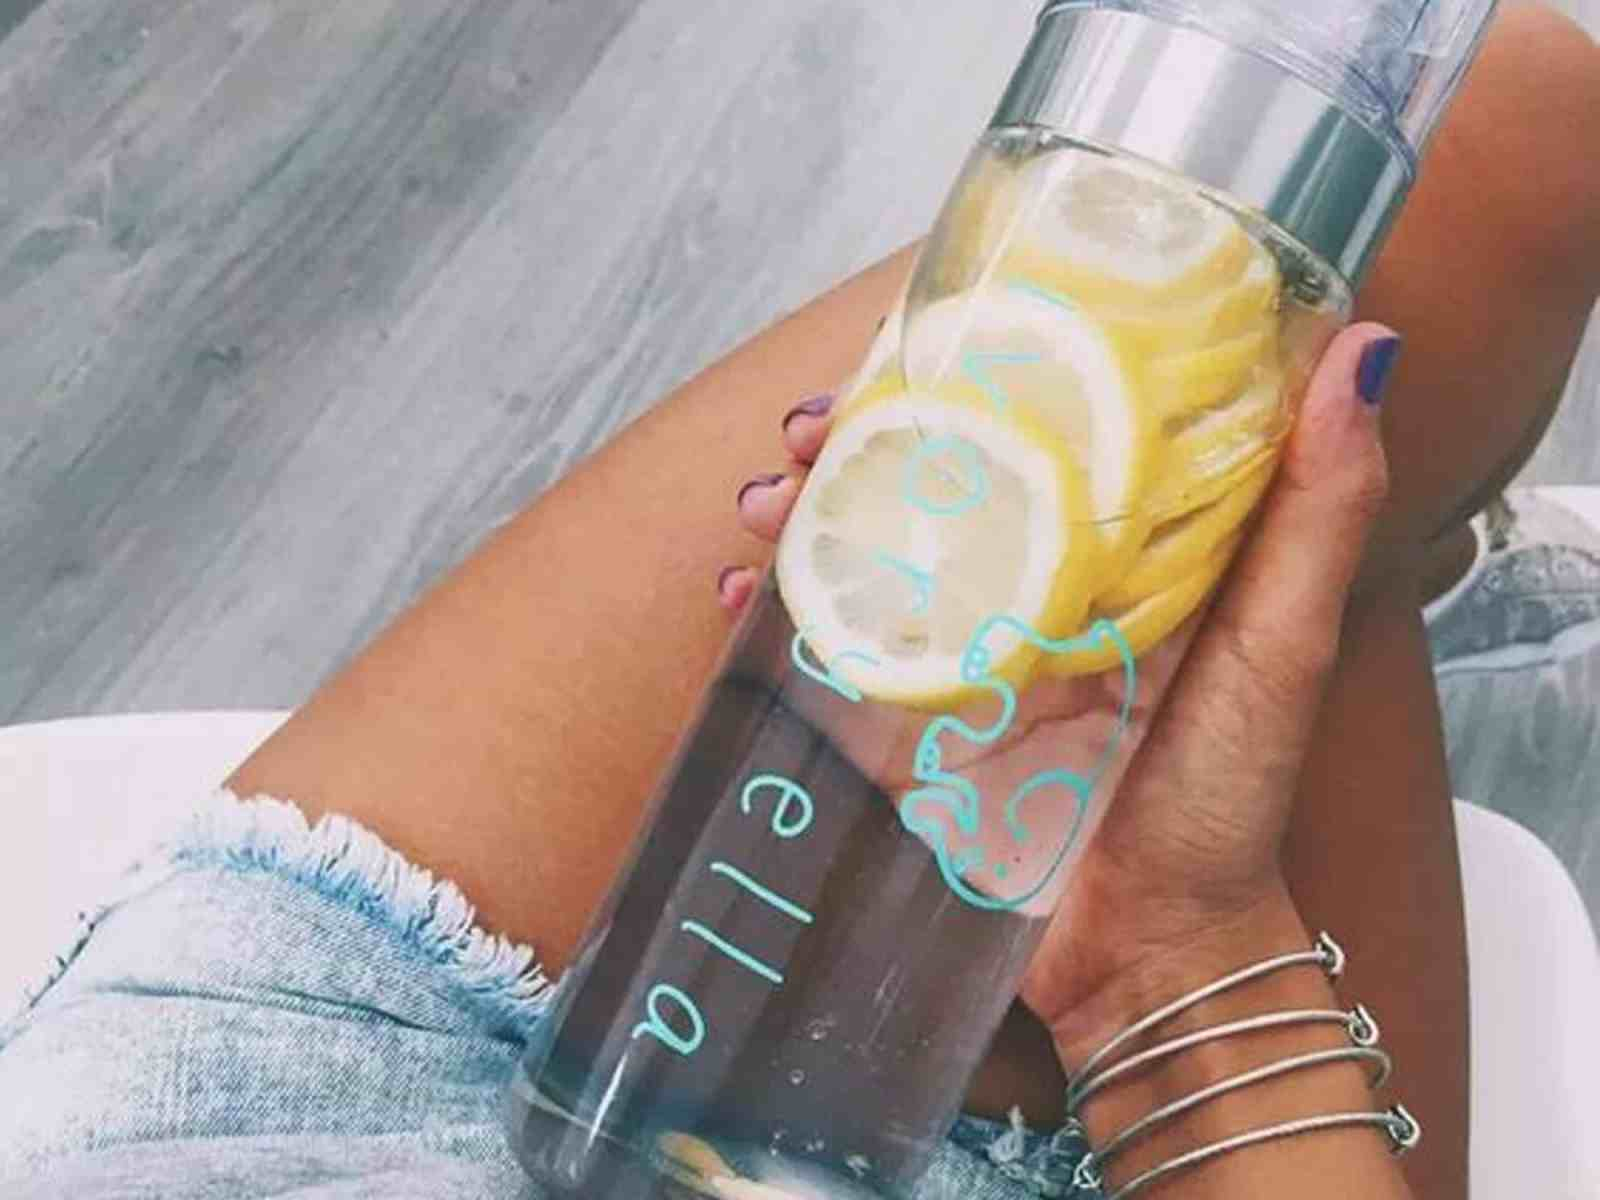 I Tried A Lemon Water Detox For Two Weeks And This Is What Happened